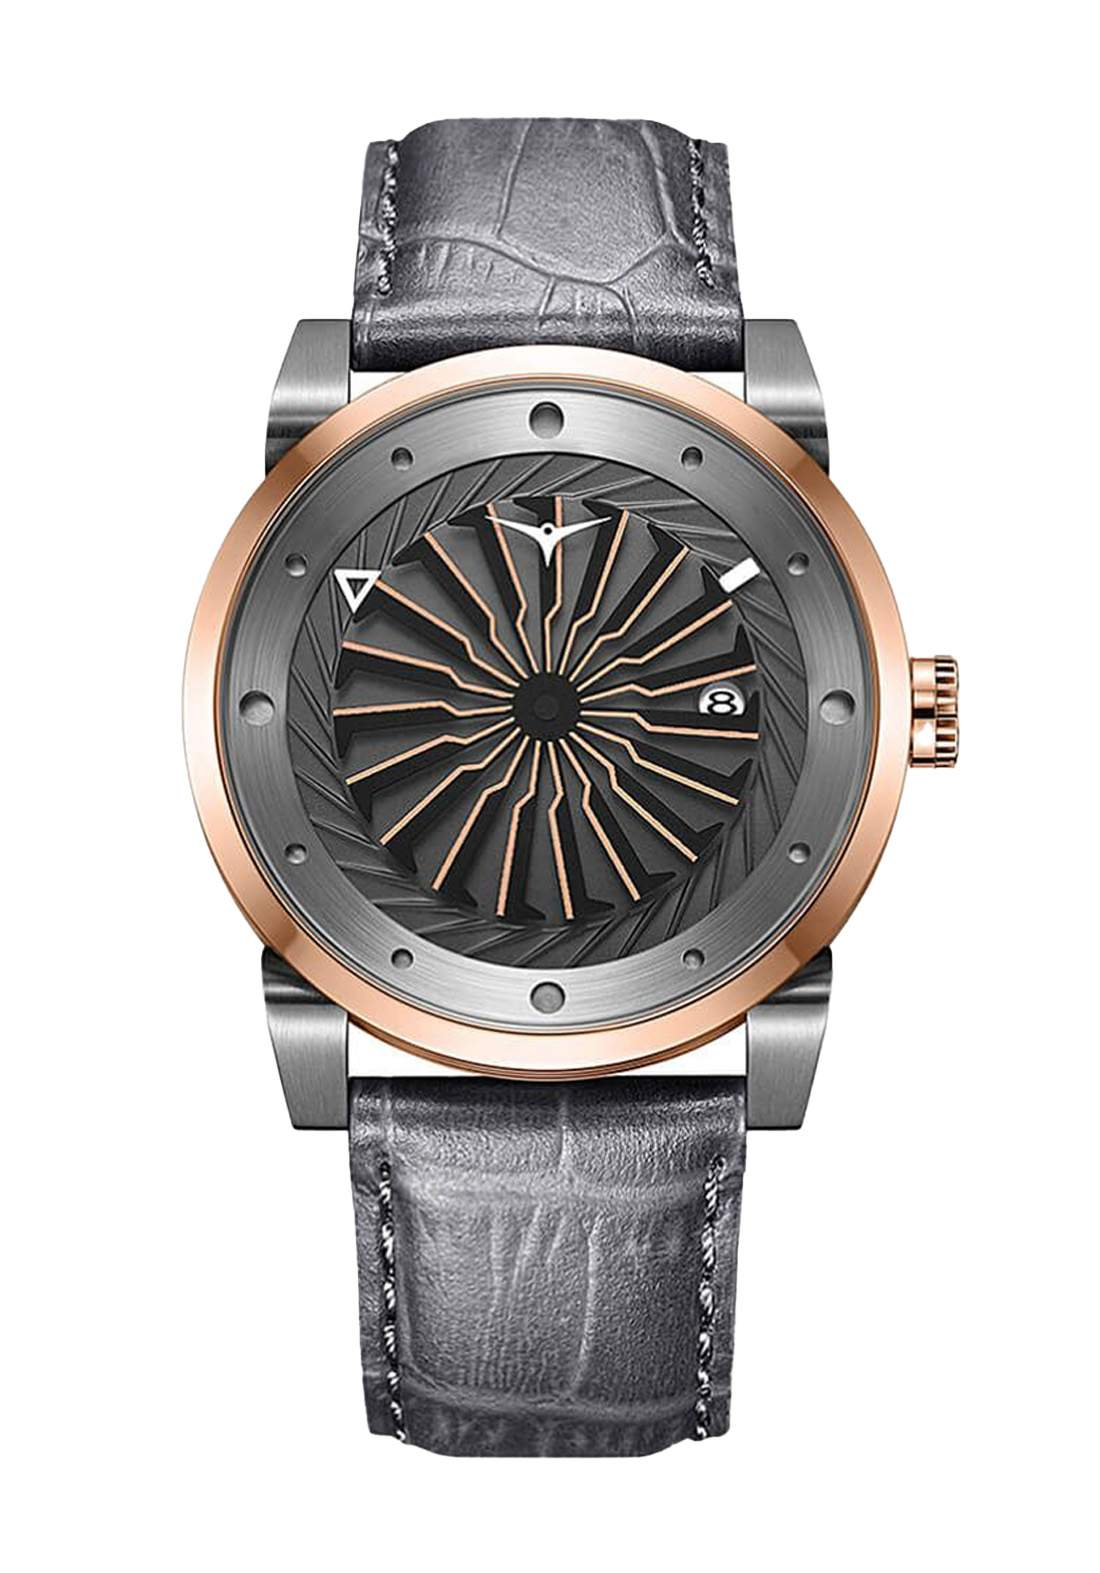 Zinvo Rival Fusion Watch For Men - Gray  ساعة رجالي